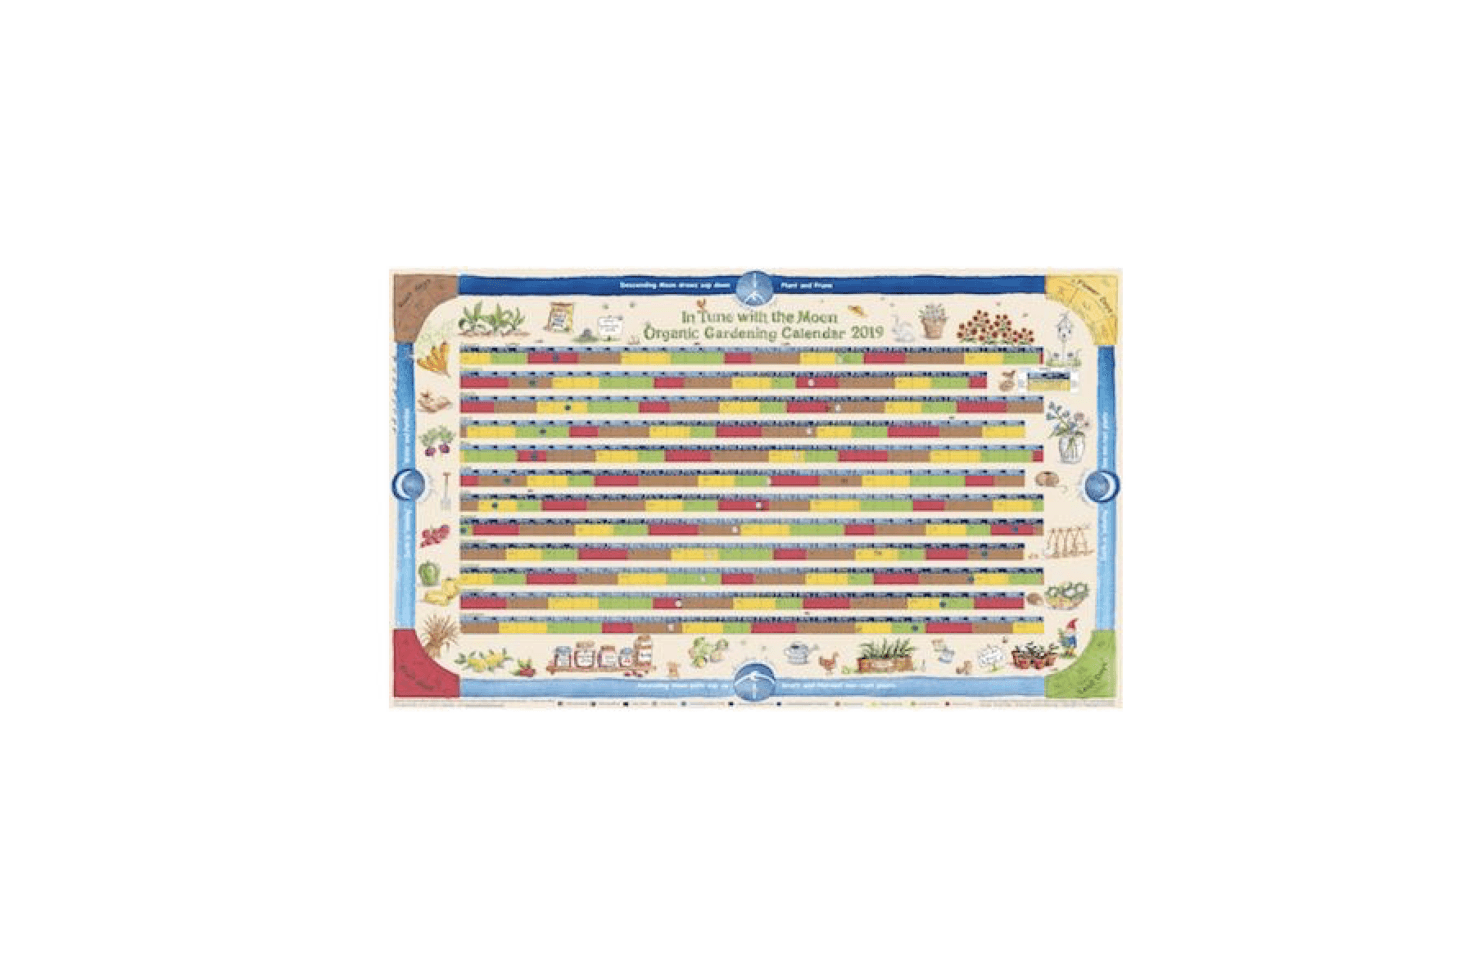 From Lunar Organics, a Moon Gardening Calendar  is printed on recycled paper and is color-coded to make it easy to identify moon phases, moon paths, moon constellations, and favored plant aspects; from£7.95to £8.95 (with an accompanying booklet).